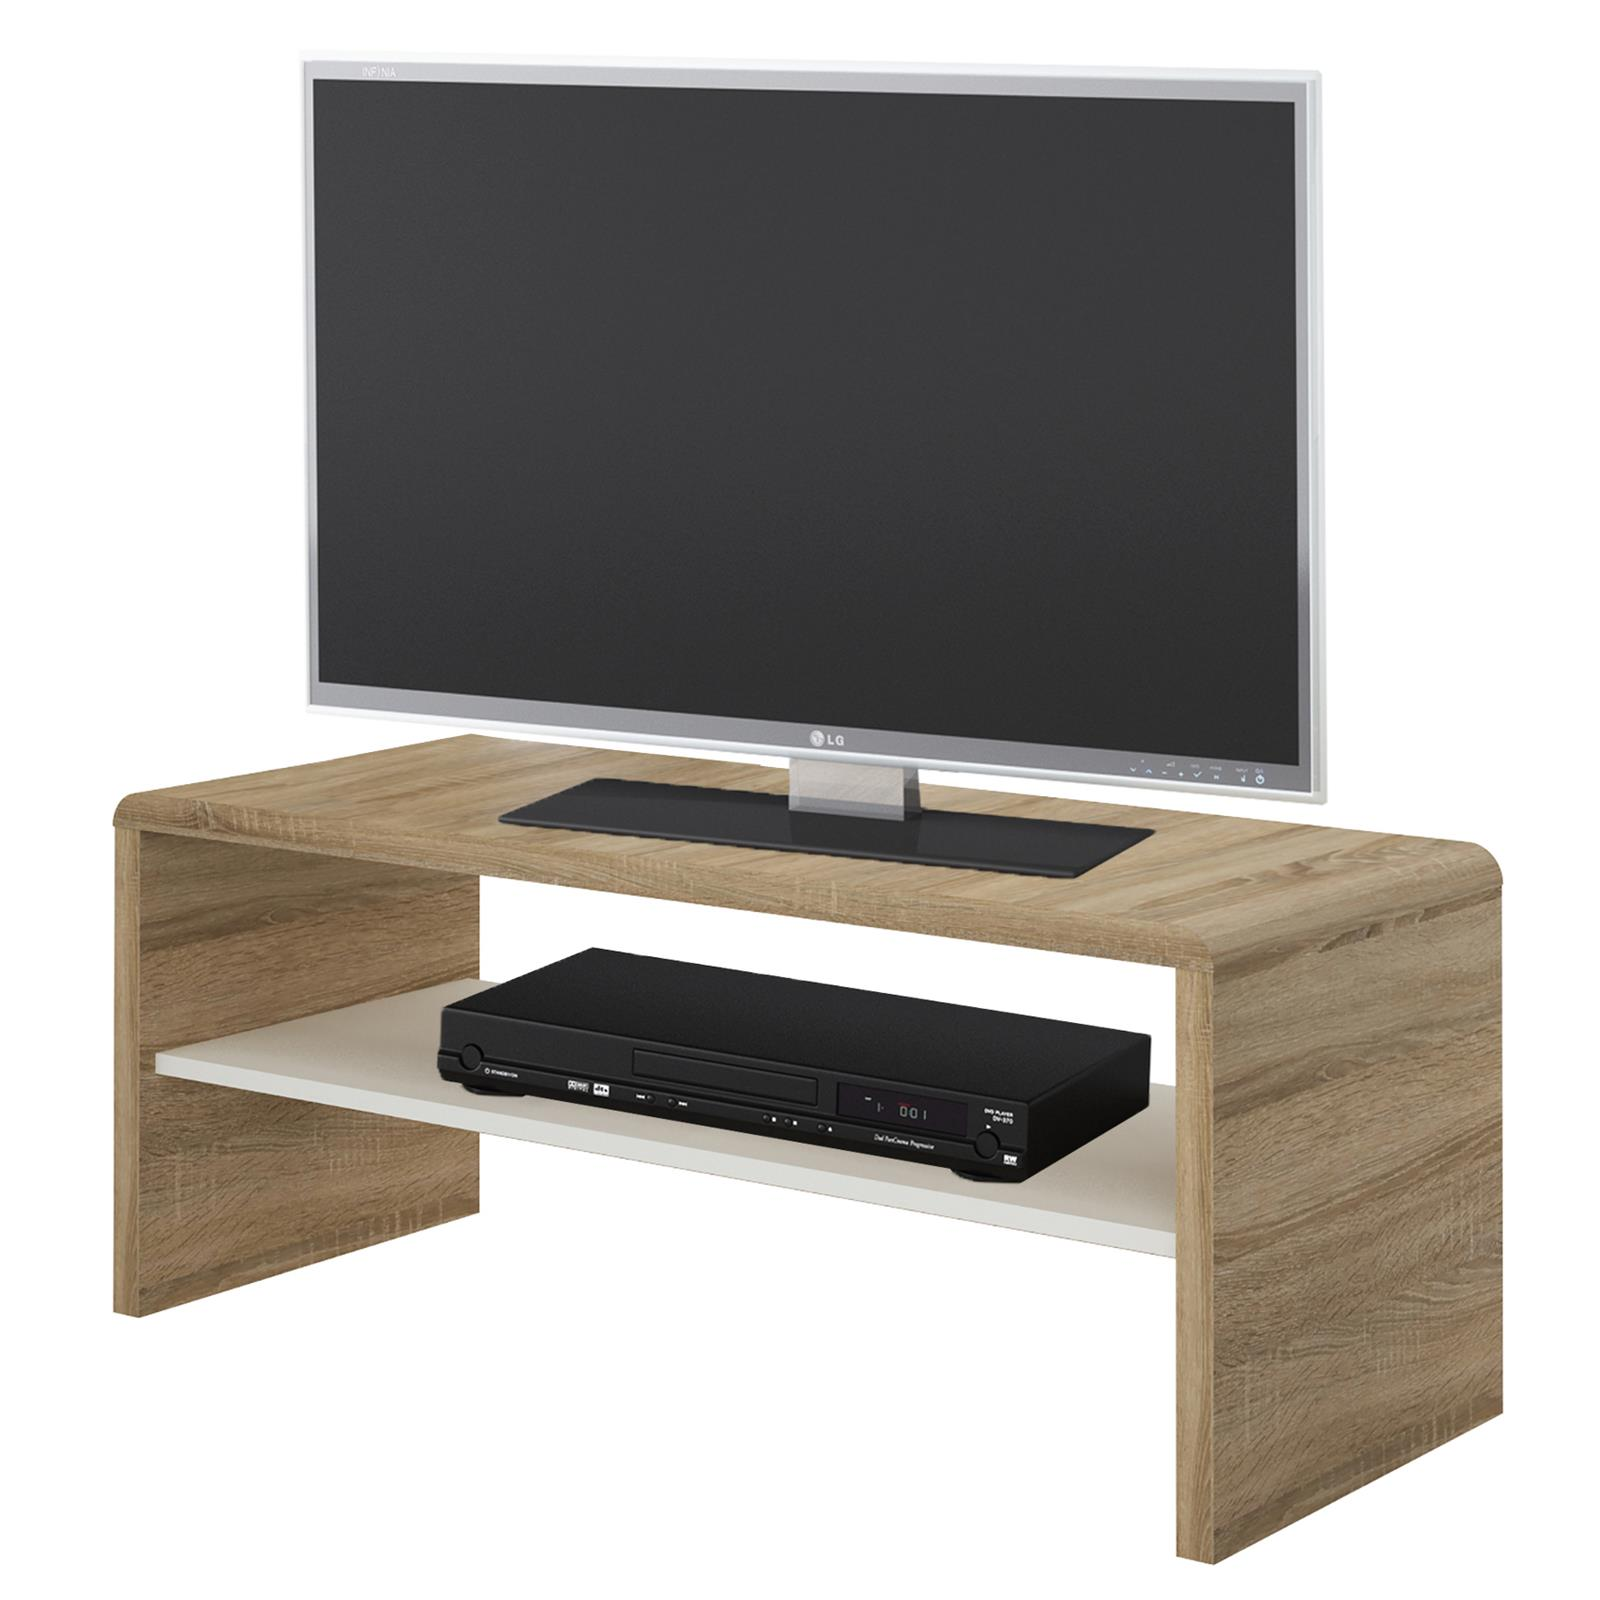 tv lowboard couchtisch fernsehschrank sofatisch 100 cm breit mit farbauswahl ebay. Black Bedroom Furniture Sets. Home Design Ideas